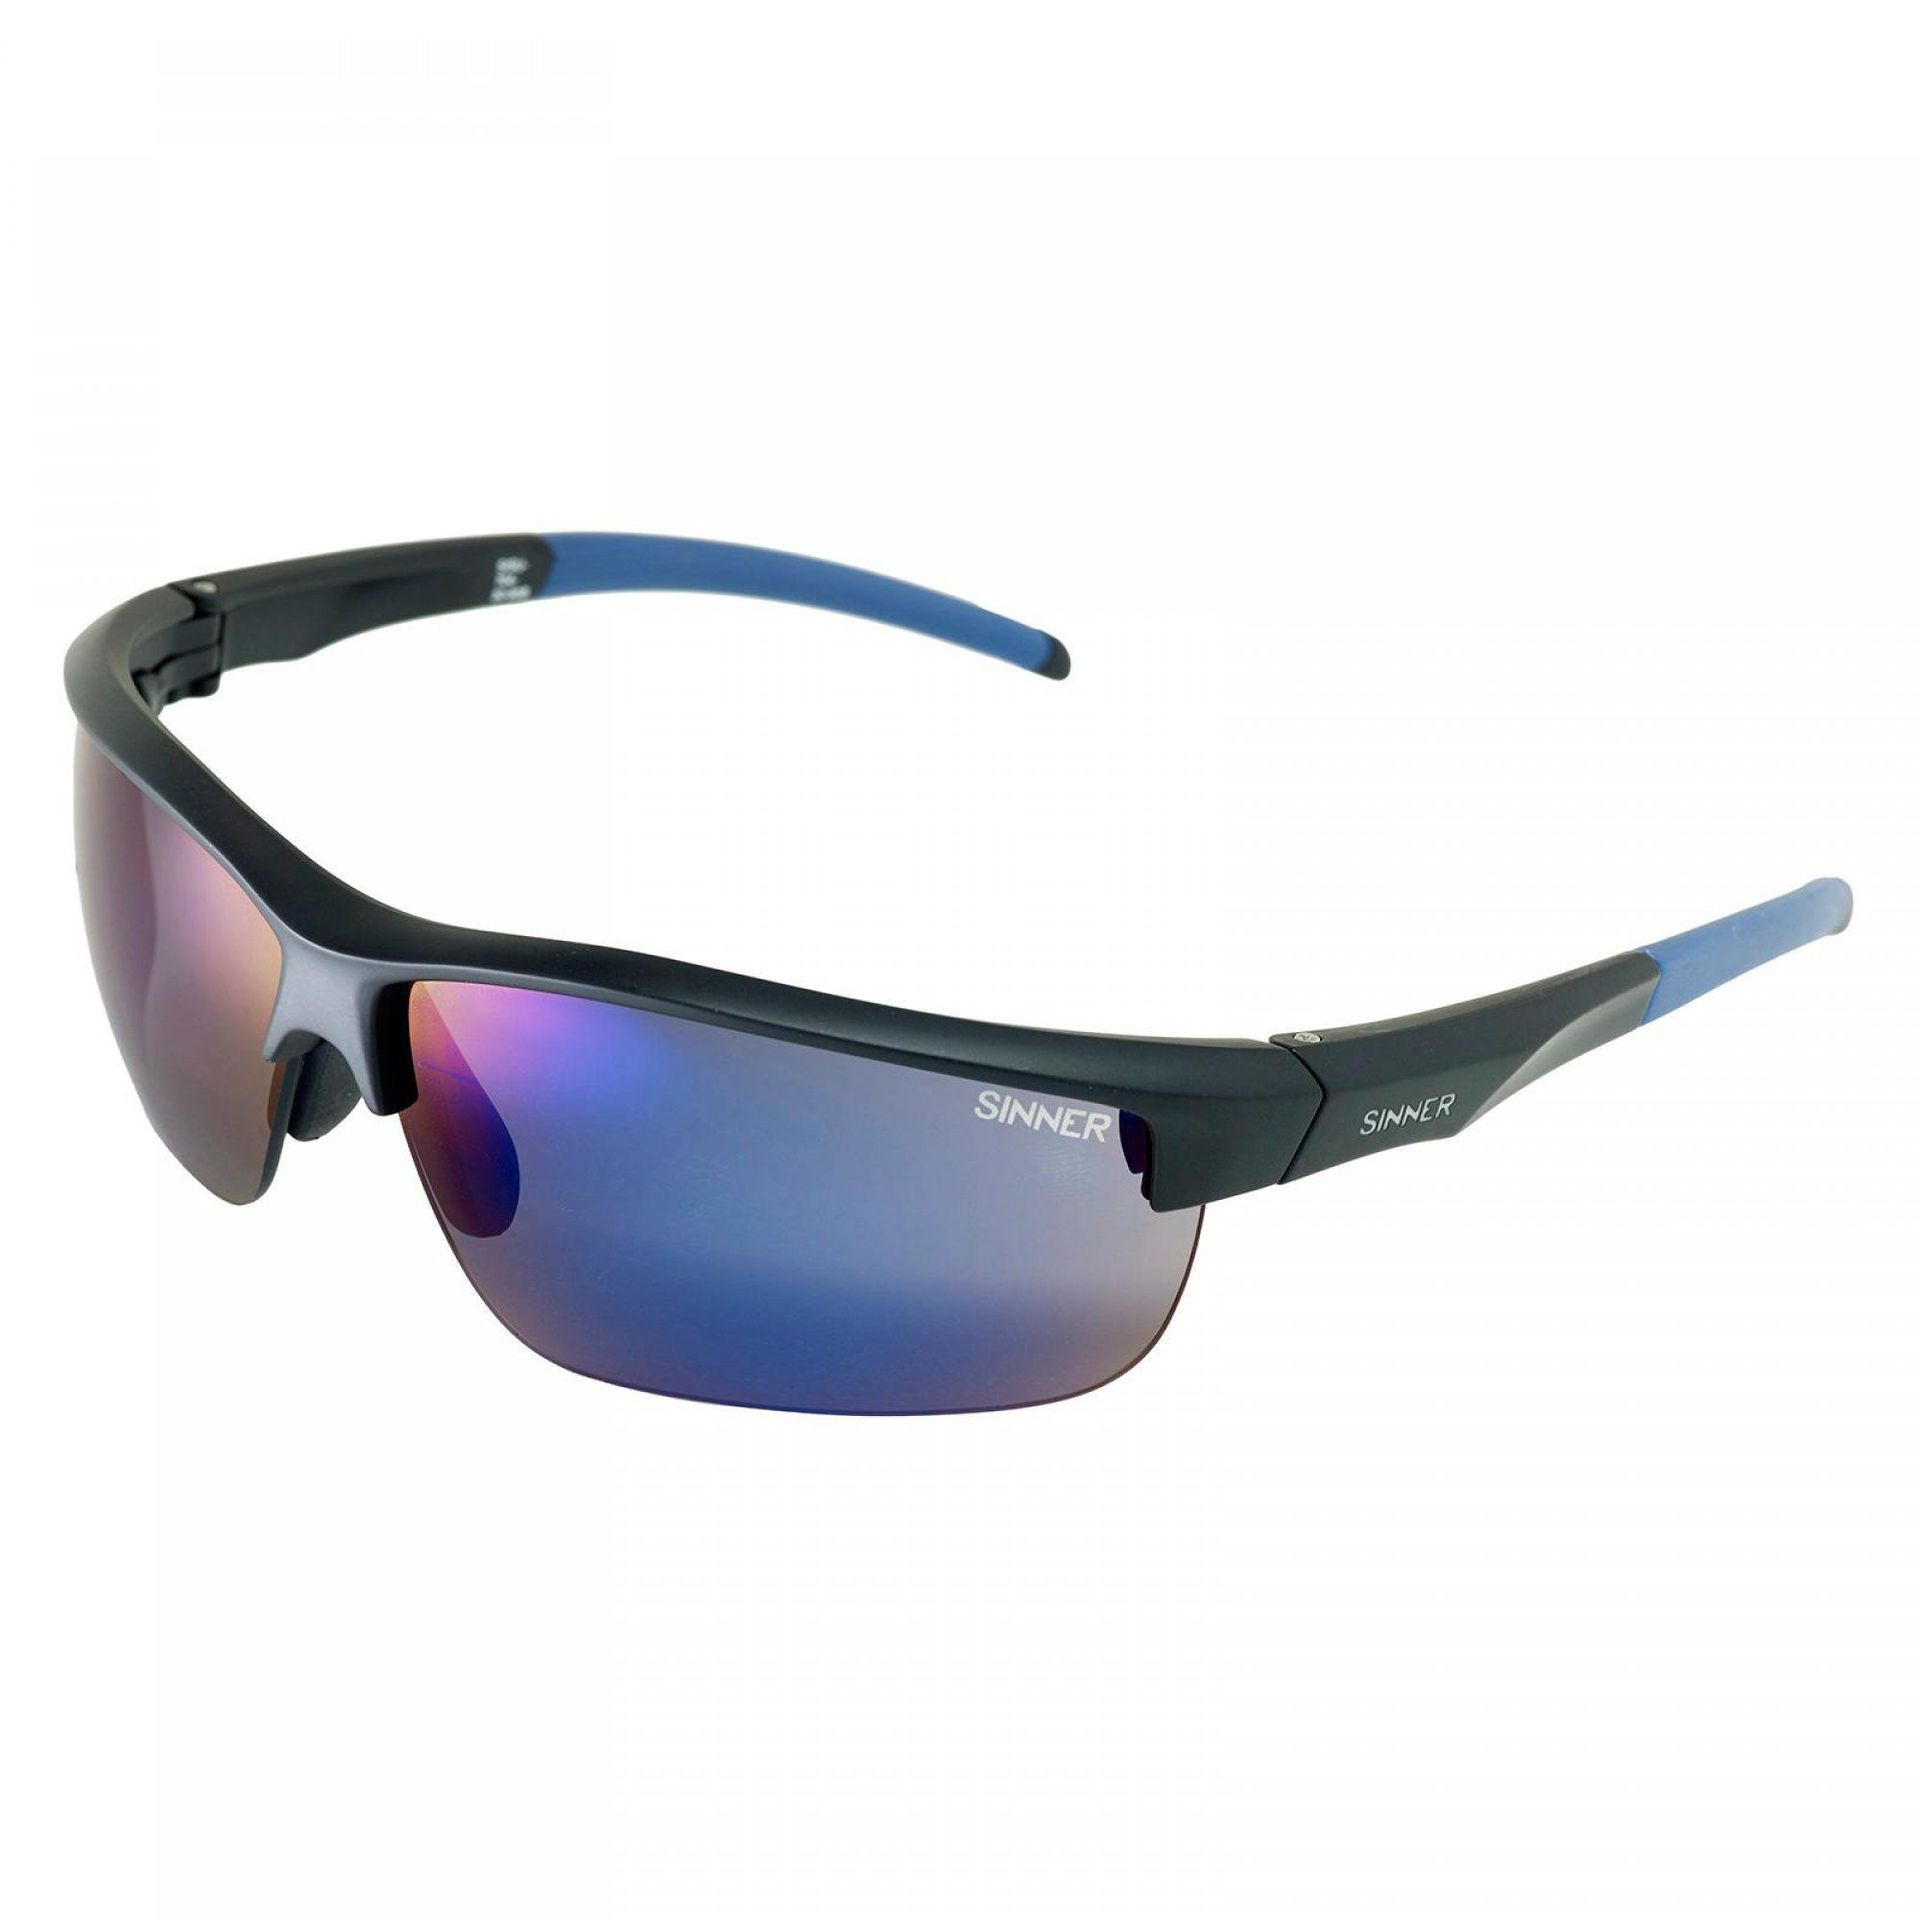 OKULARY SINNER ANTIGUA BLACK|BLUE 1